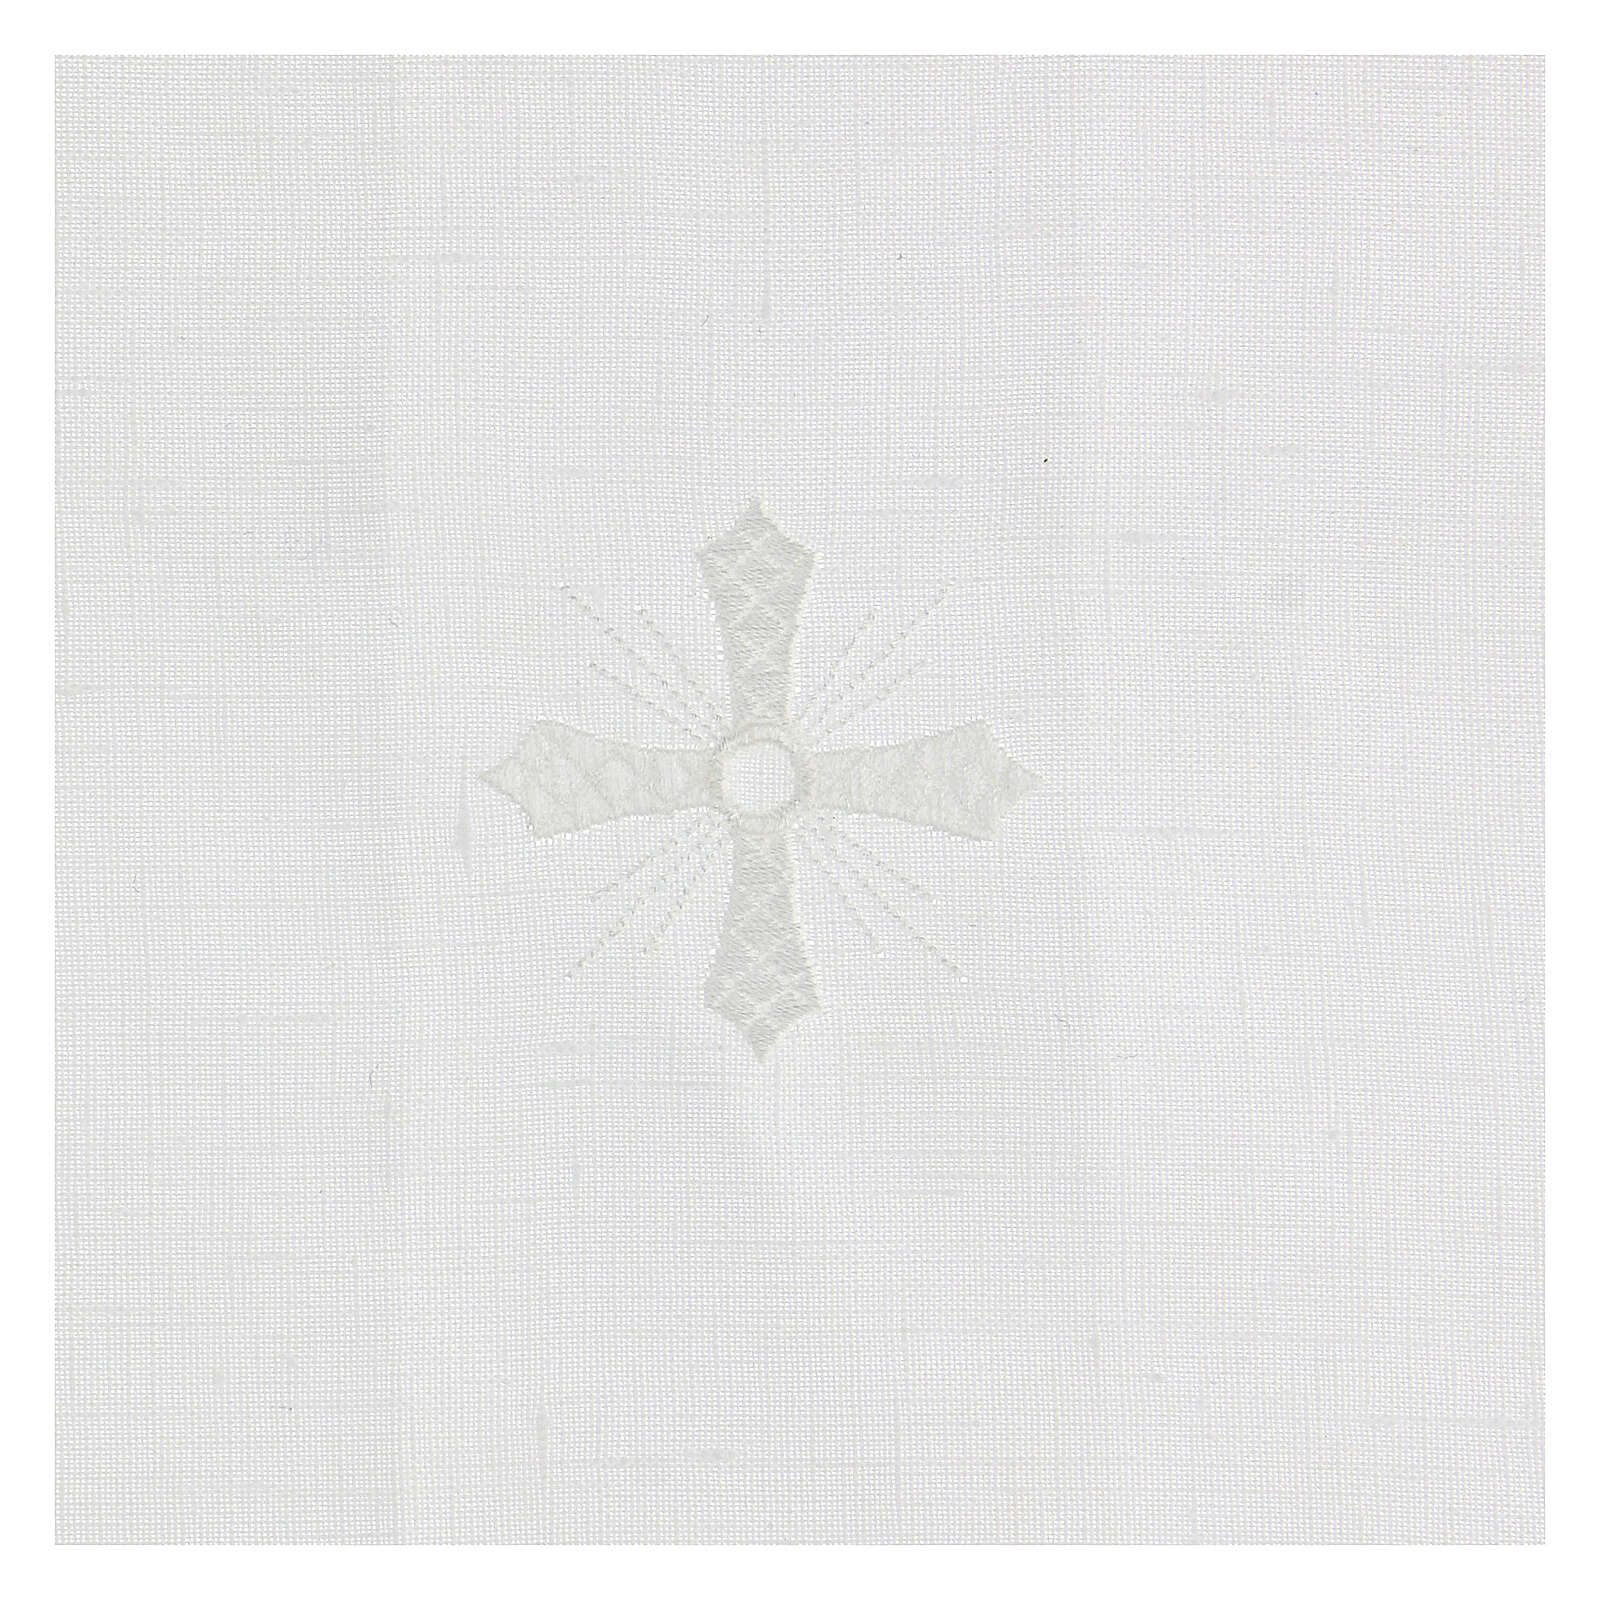 Purificator white 100% linen with white embroidery 4